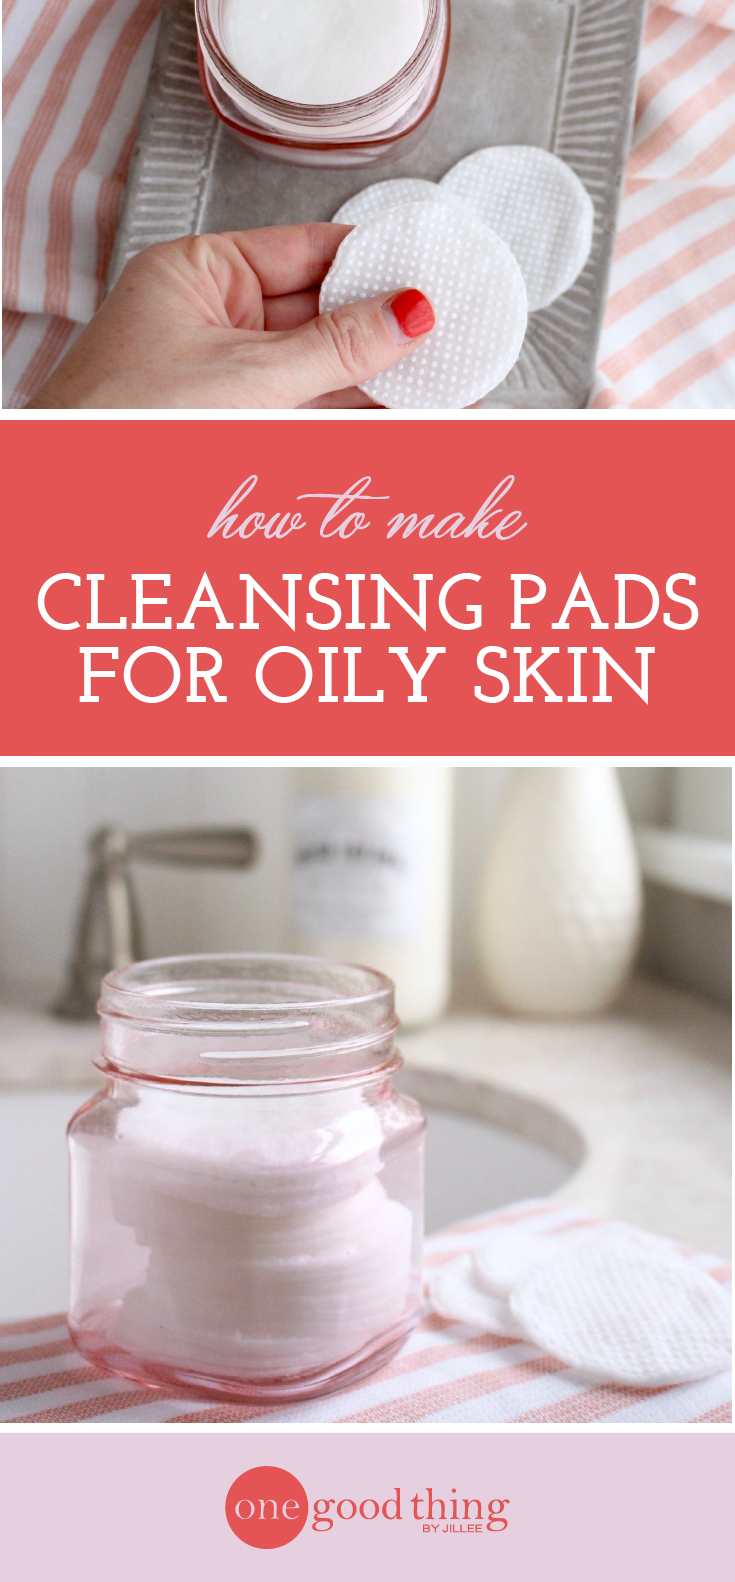 Learning how to make oily cream